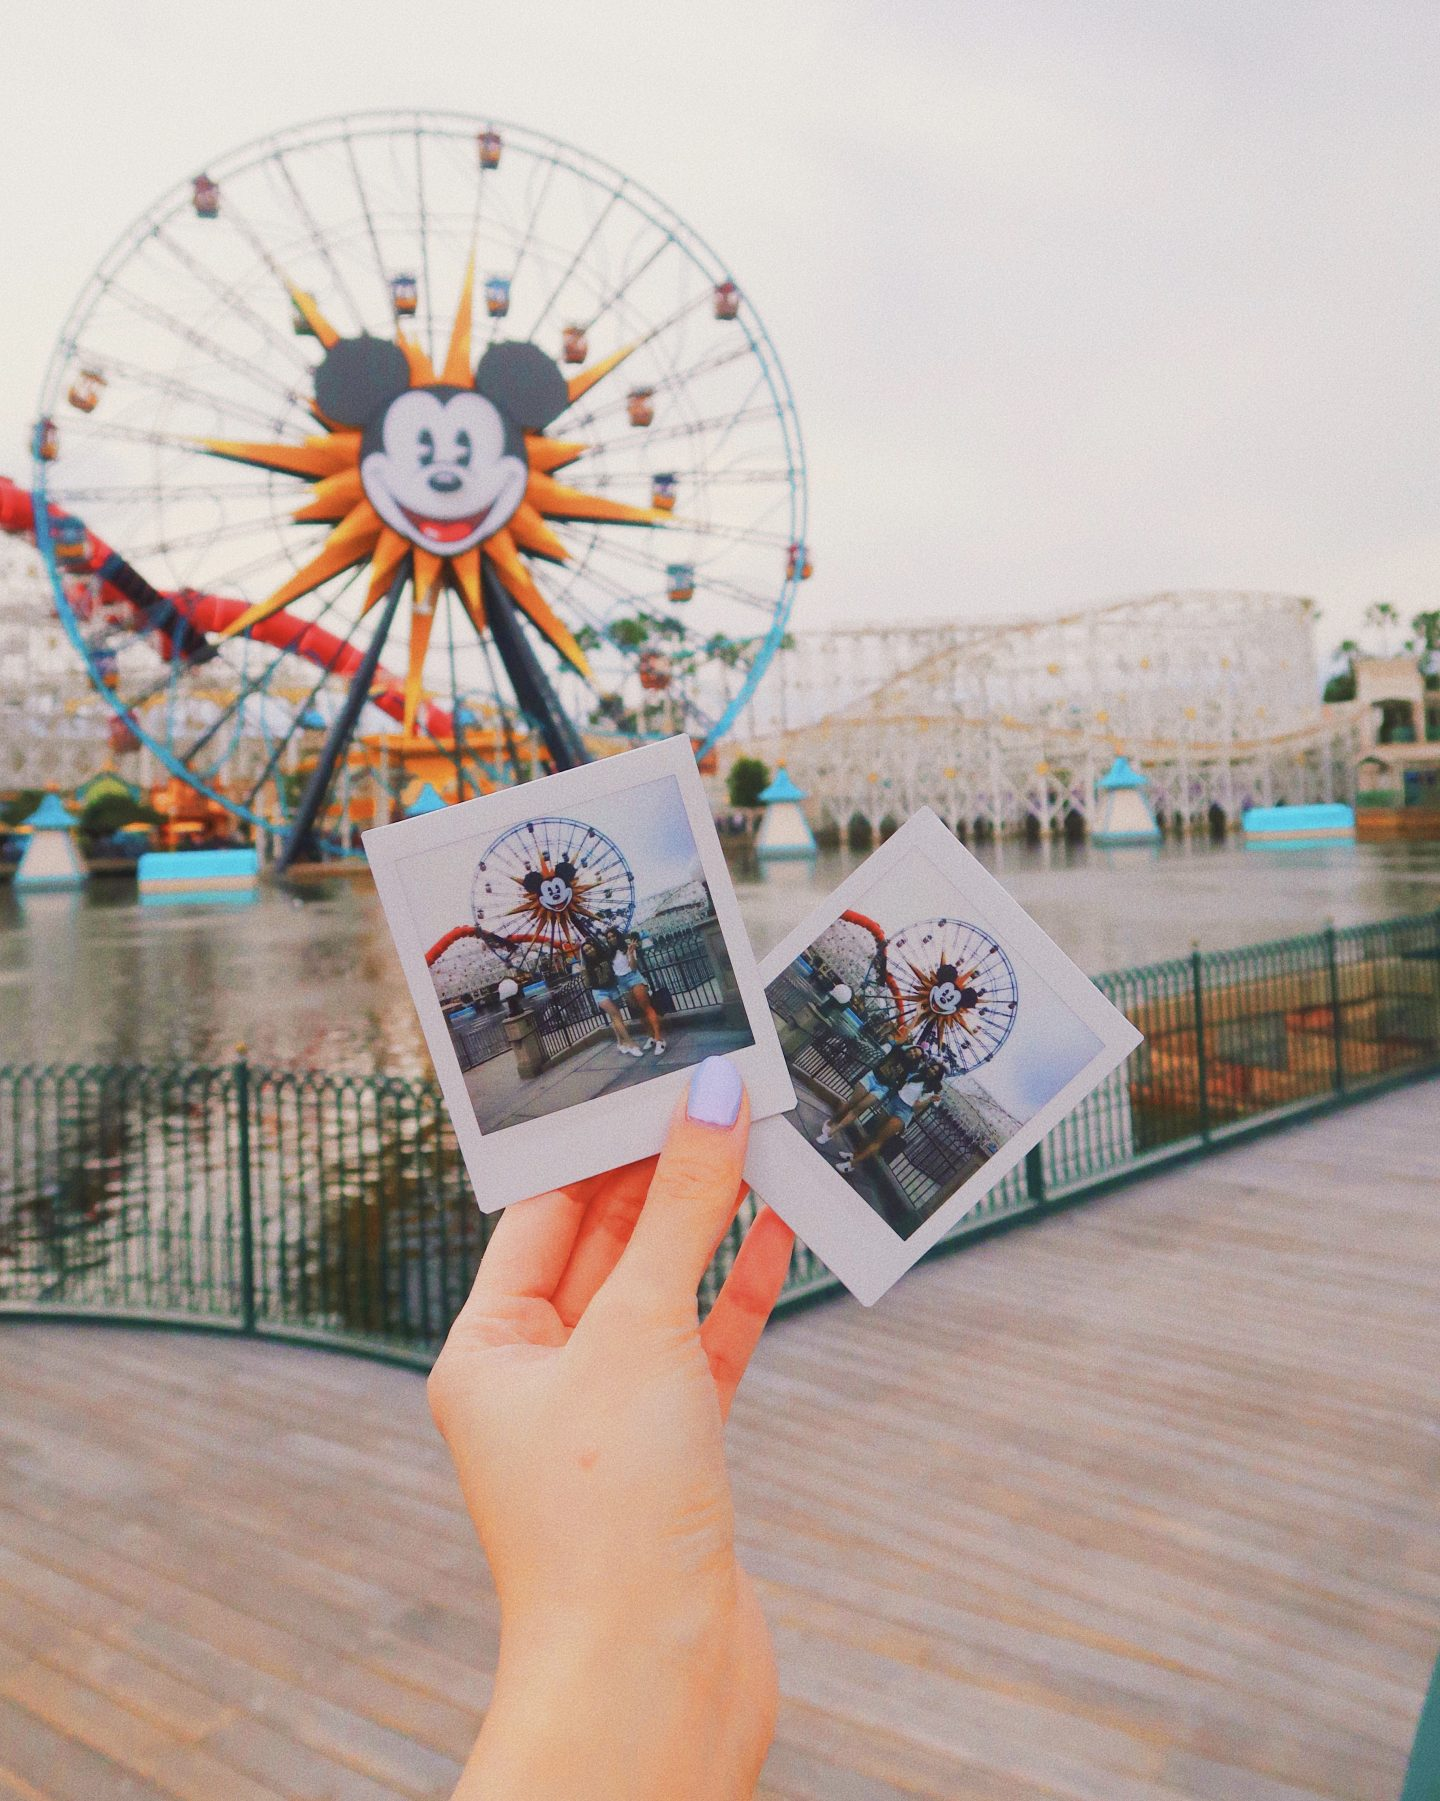 Taking Polaroids at the Disneyland Pier in Los Angeles